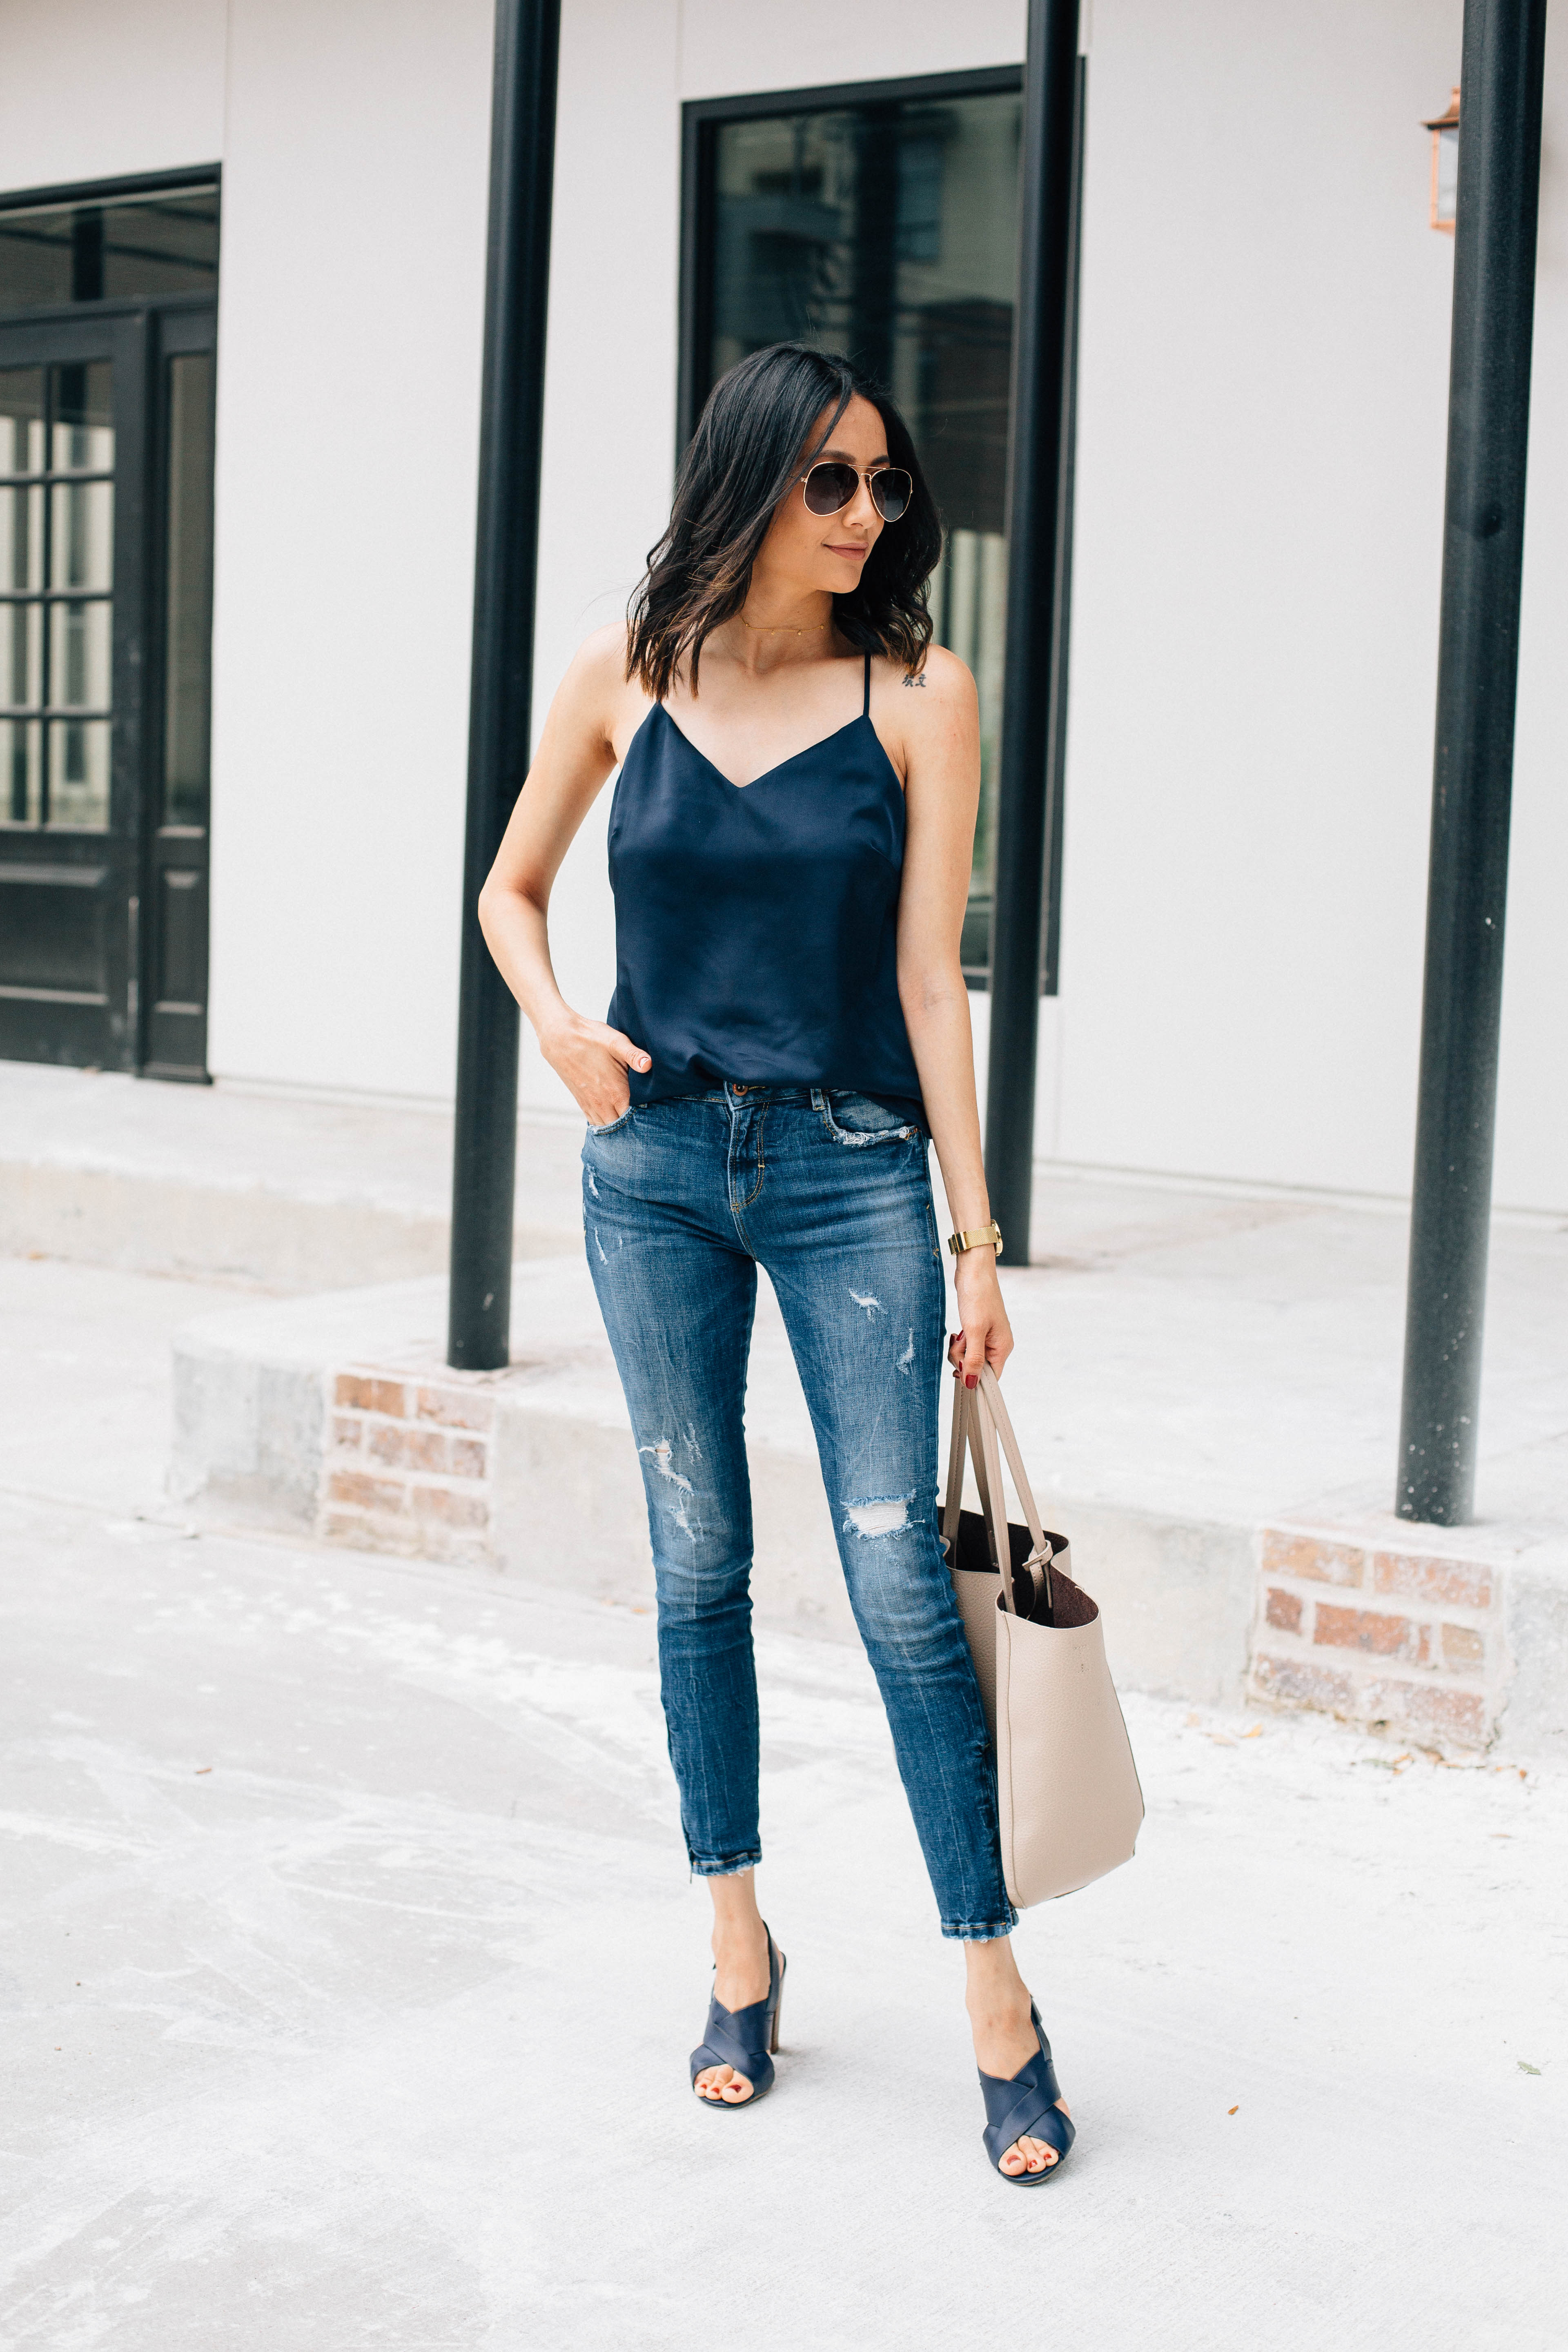 Where to find great fitting denim for a slim frame